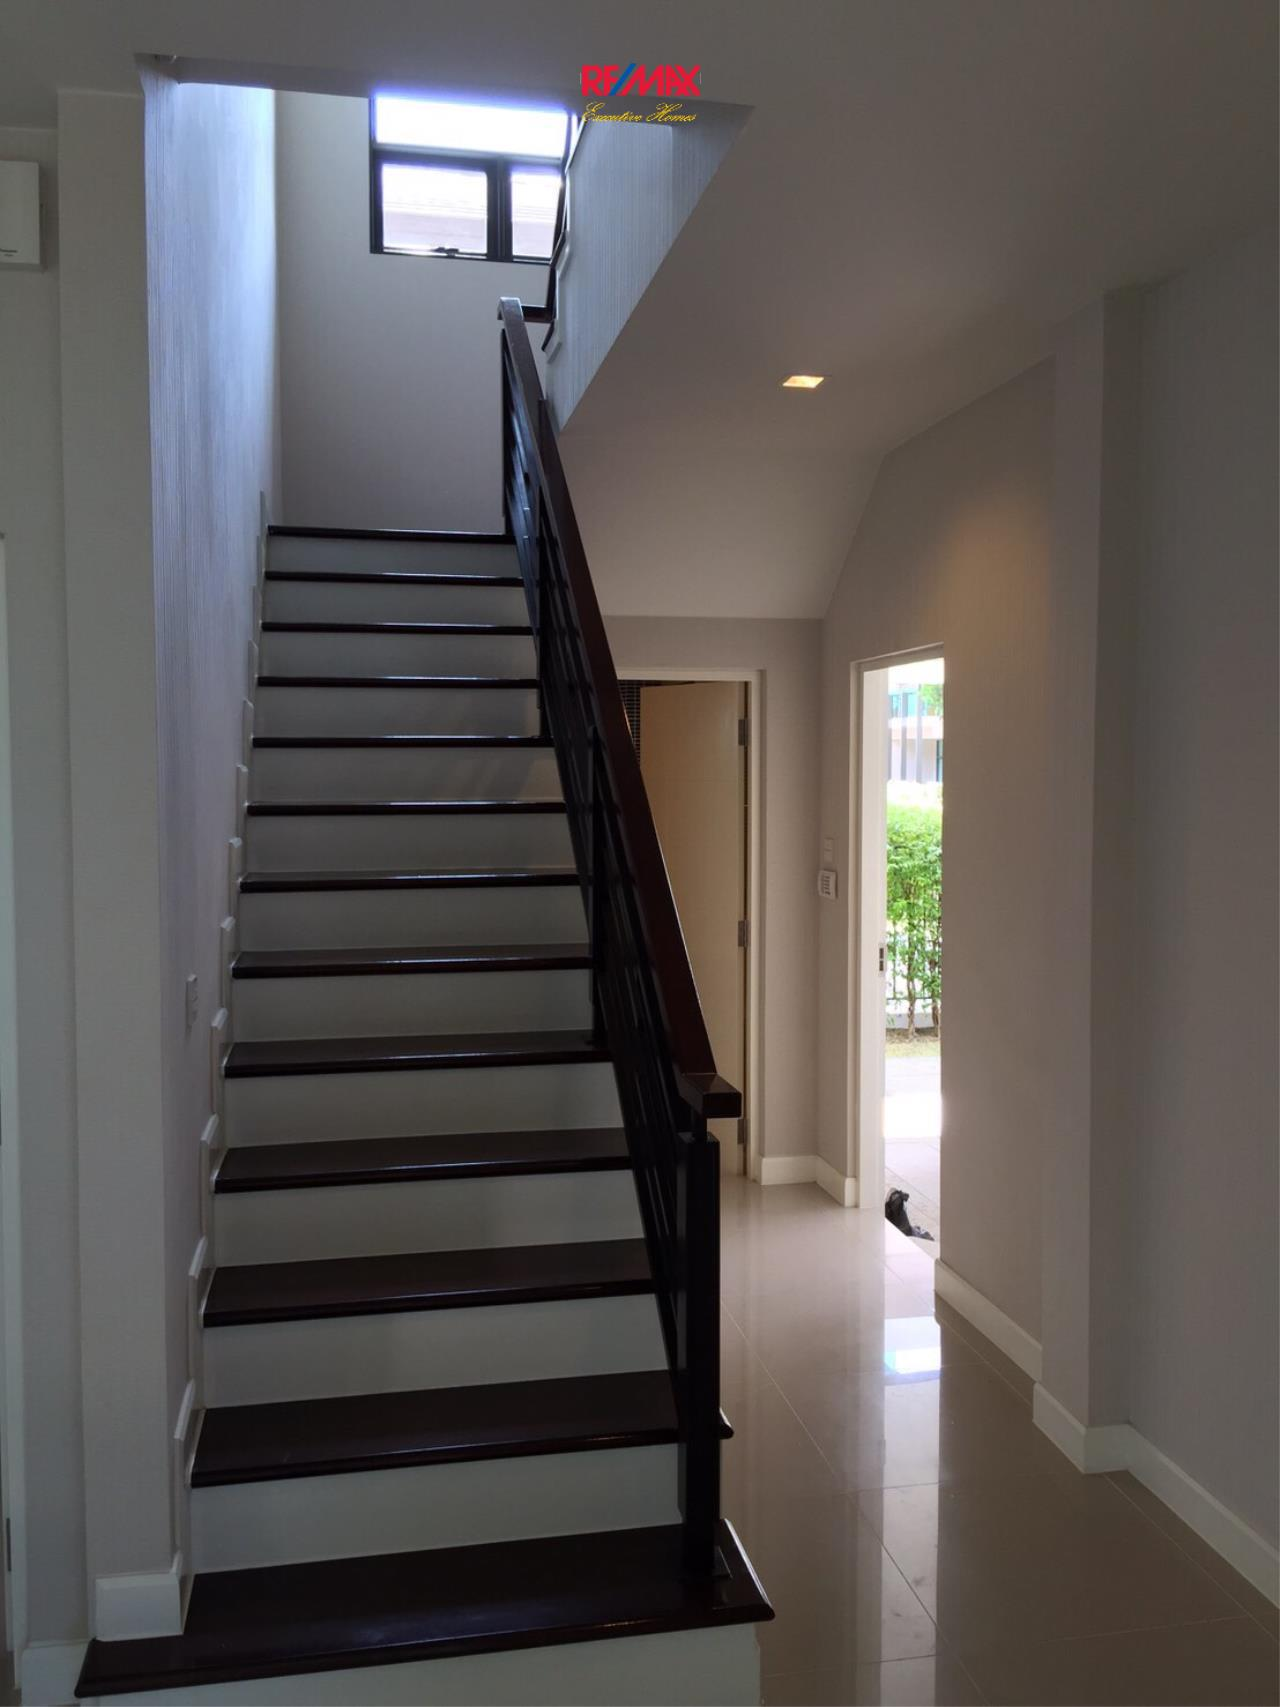 RE/MAX Executive Homes Agency's Stunning 4 Bedroom Townhouse for Sale Settasiri On Nut 7